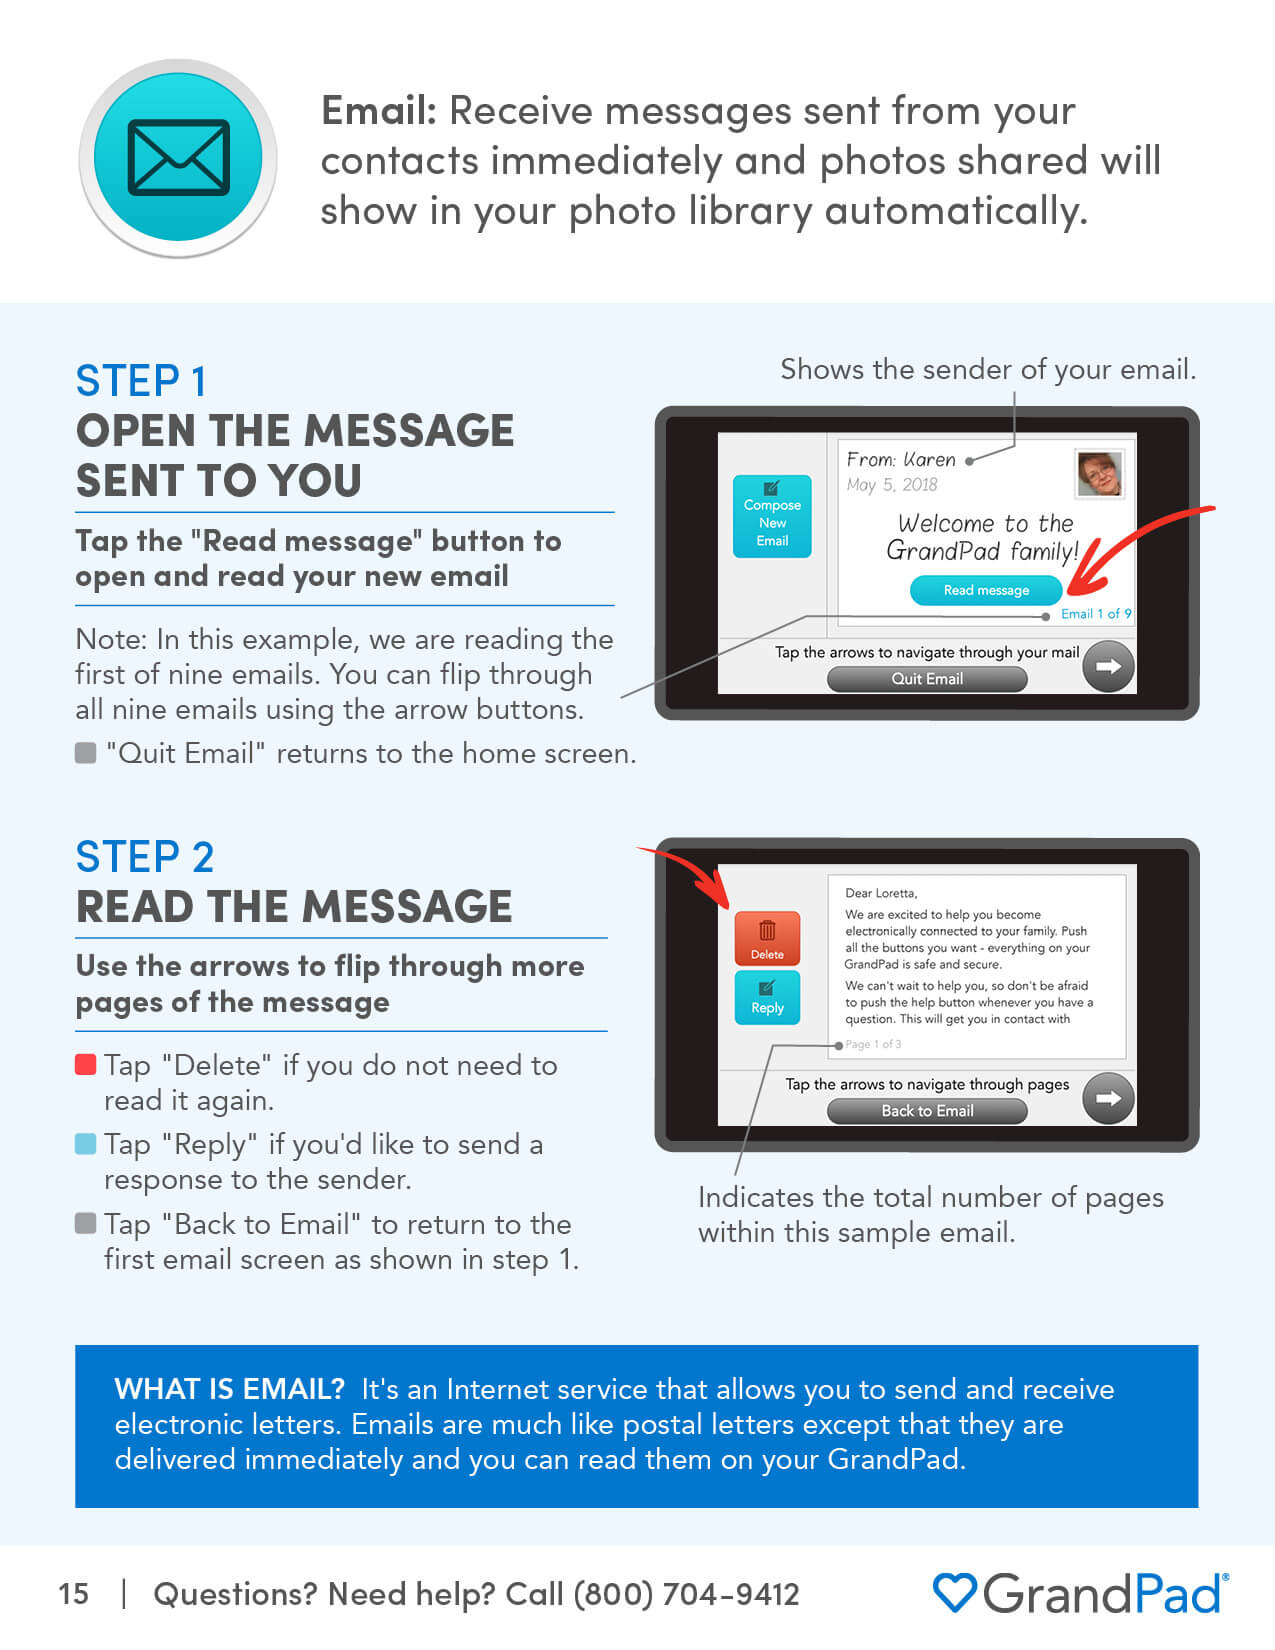 Instruction on using the Email app